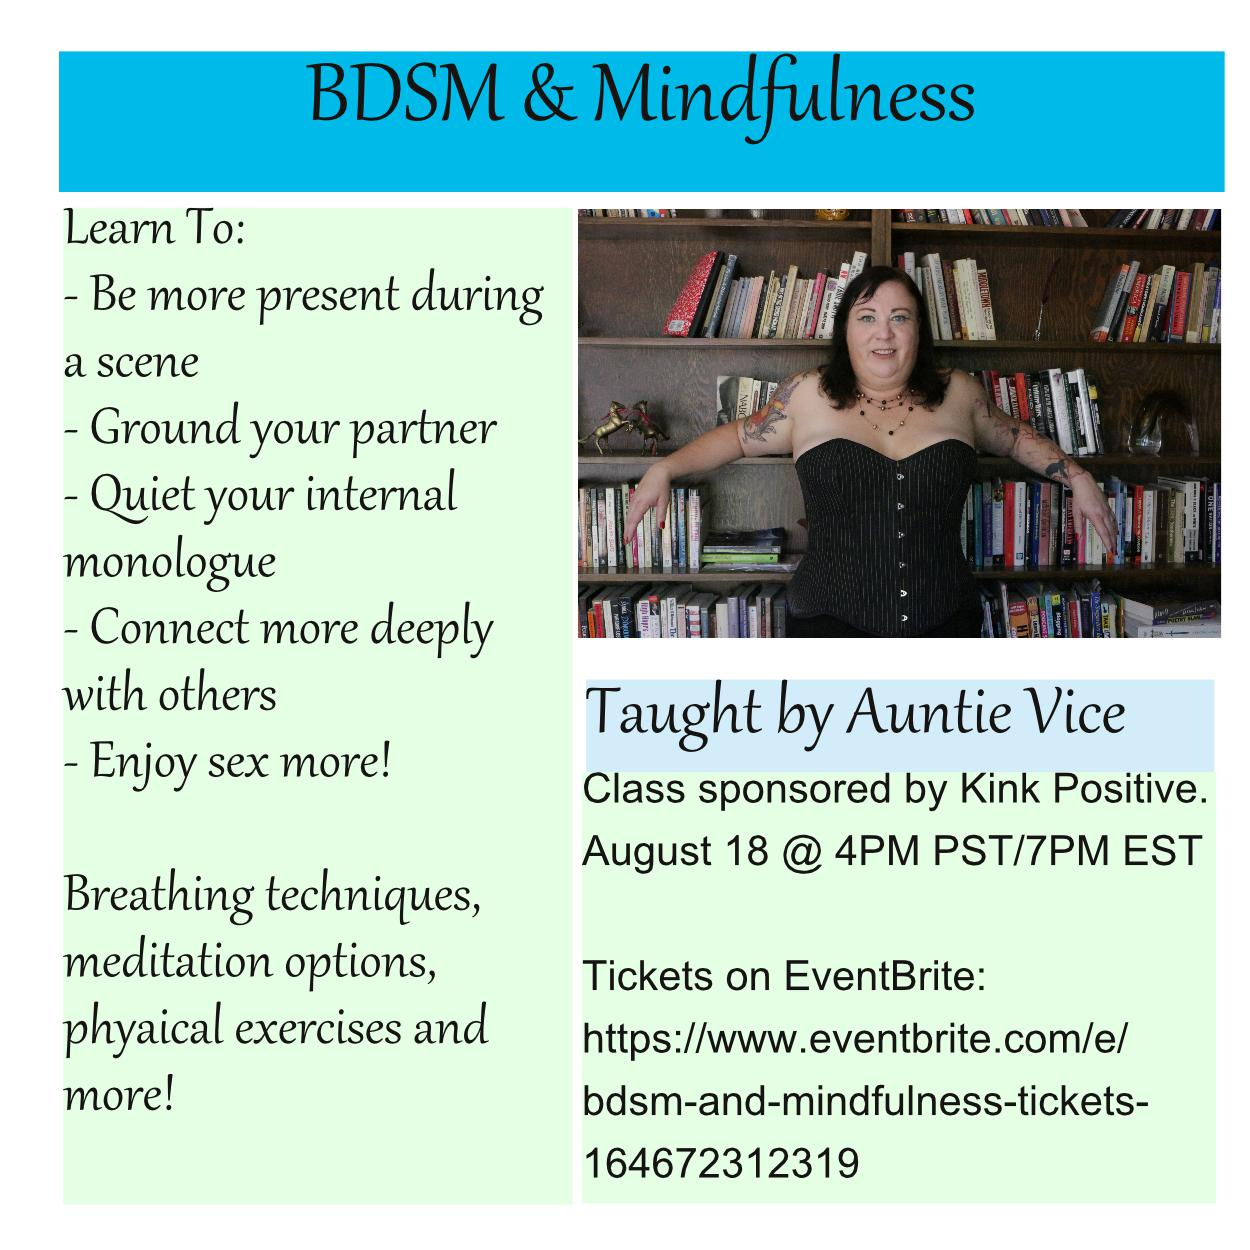 Promotion for BDSM and Mindfulness class August 18